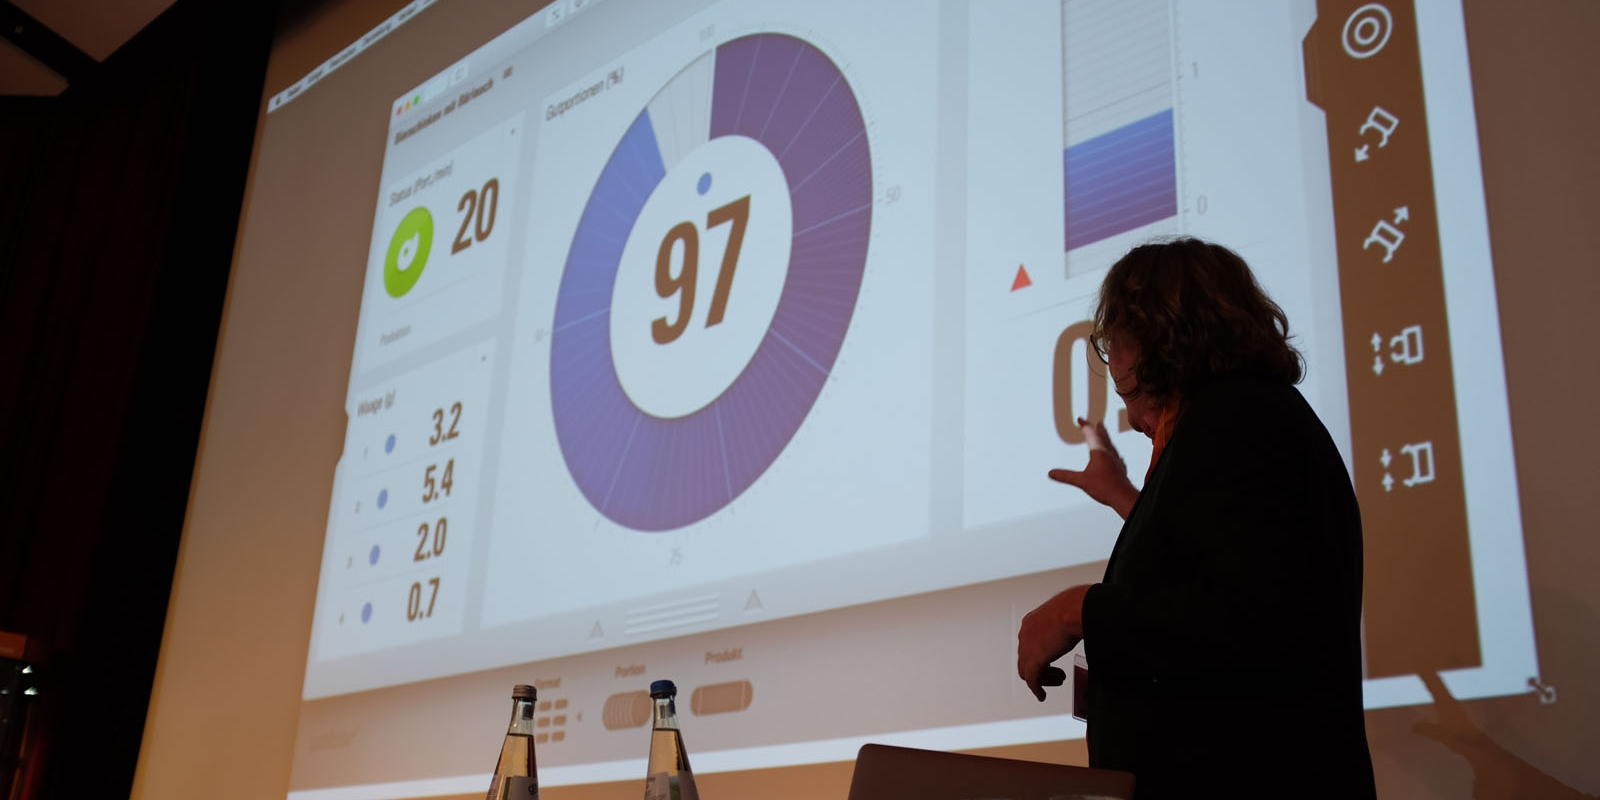 innovationdays 2015 markus buberl lecture